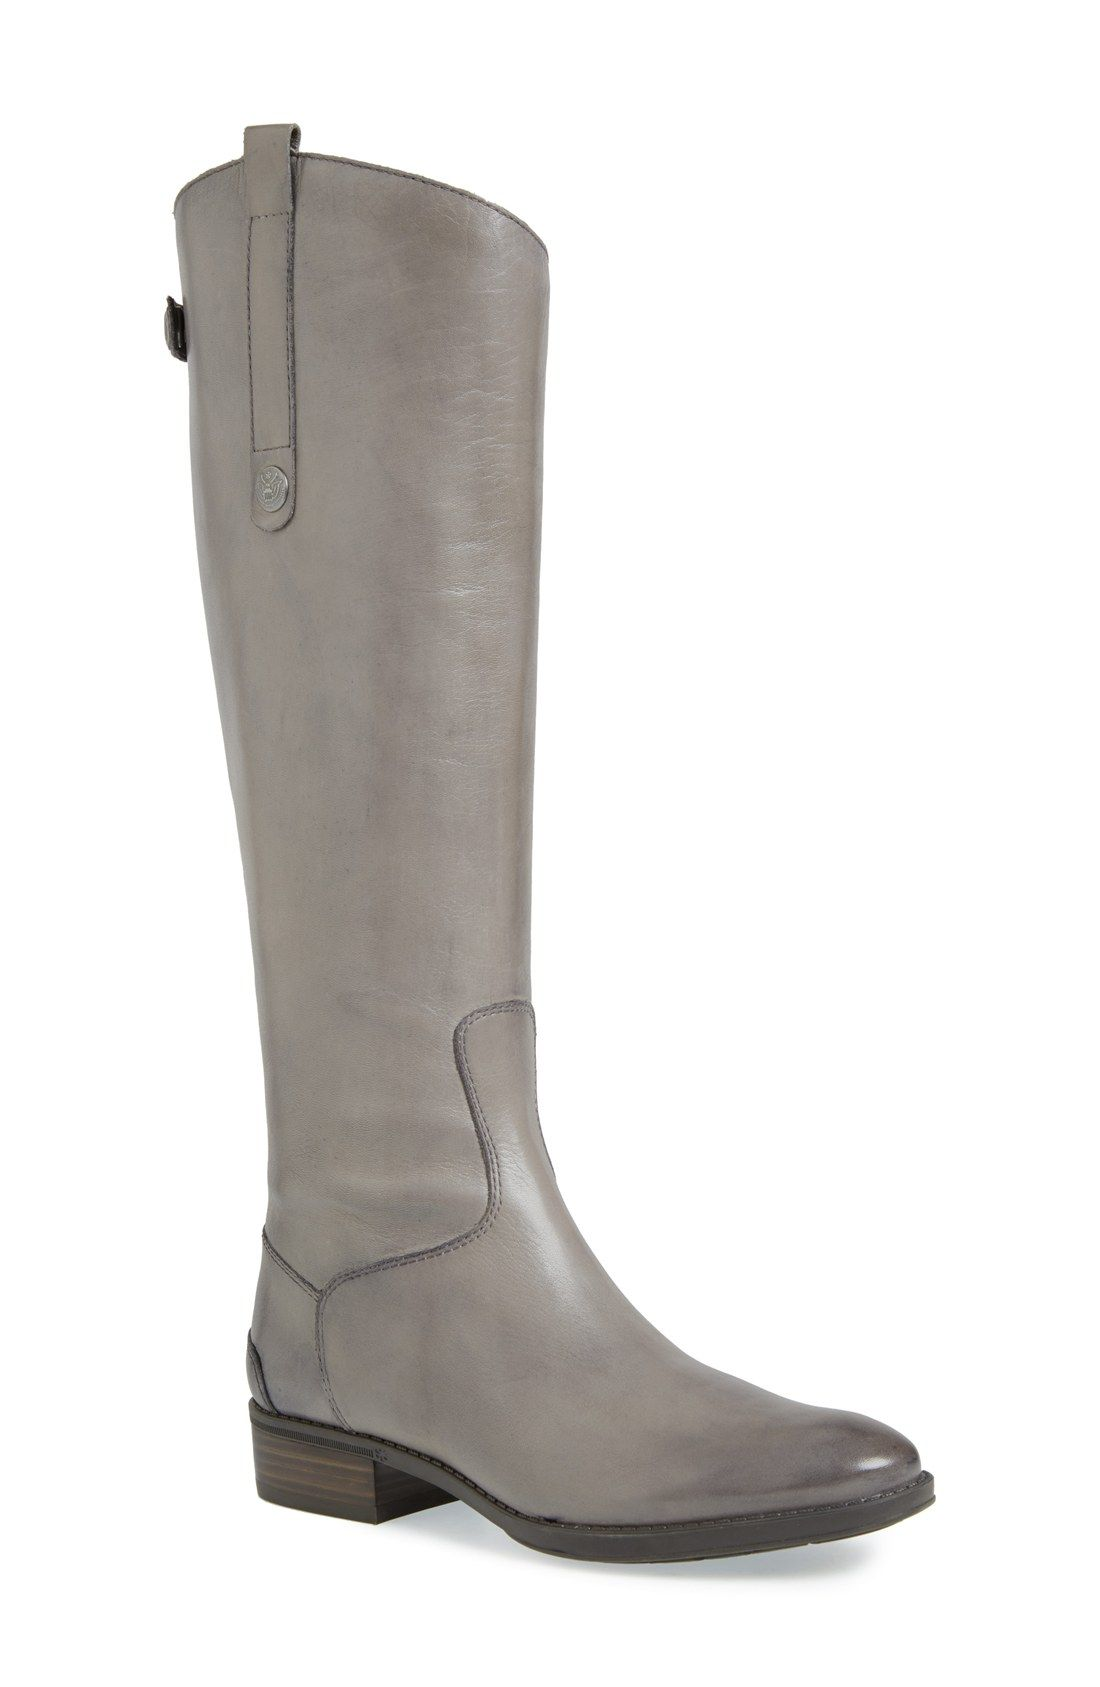 0bceadcdb9edc8 Admiring these Sam Edelman  Penny  Boots in  Grey Frost